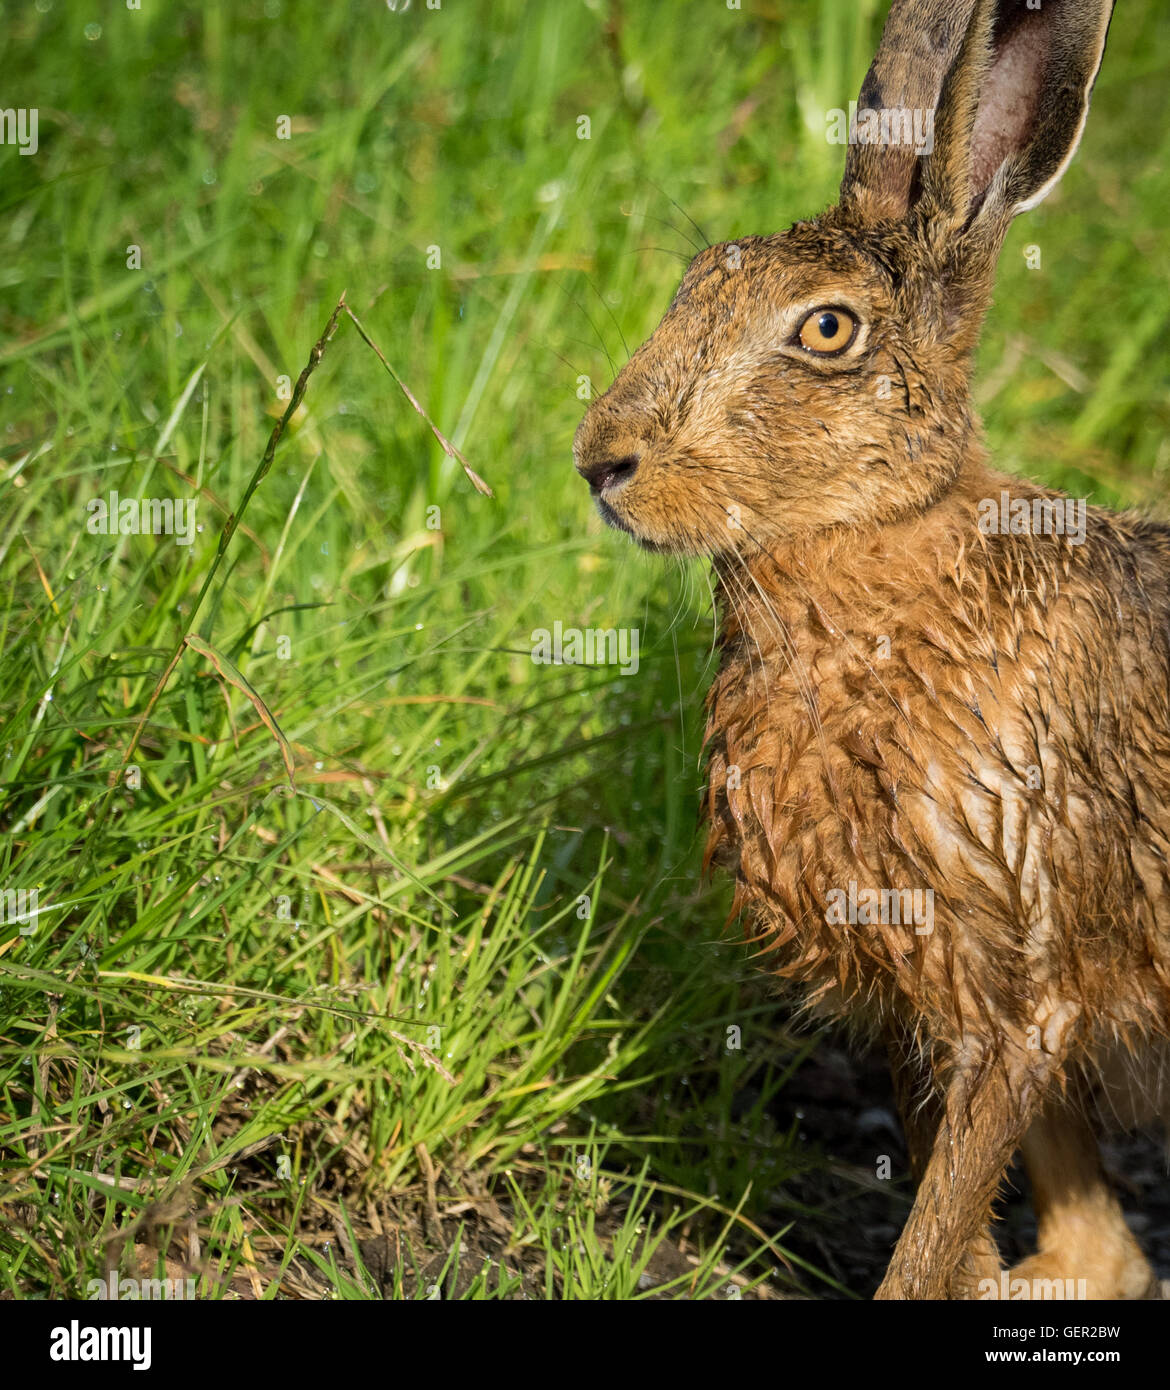 Brown Hare on path in grass wet from bathing in puddle (Lepus europaeus) - Stock Image